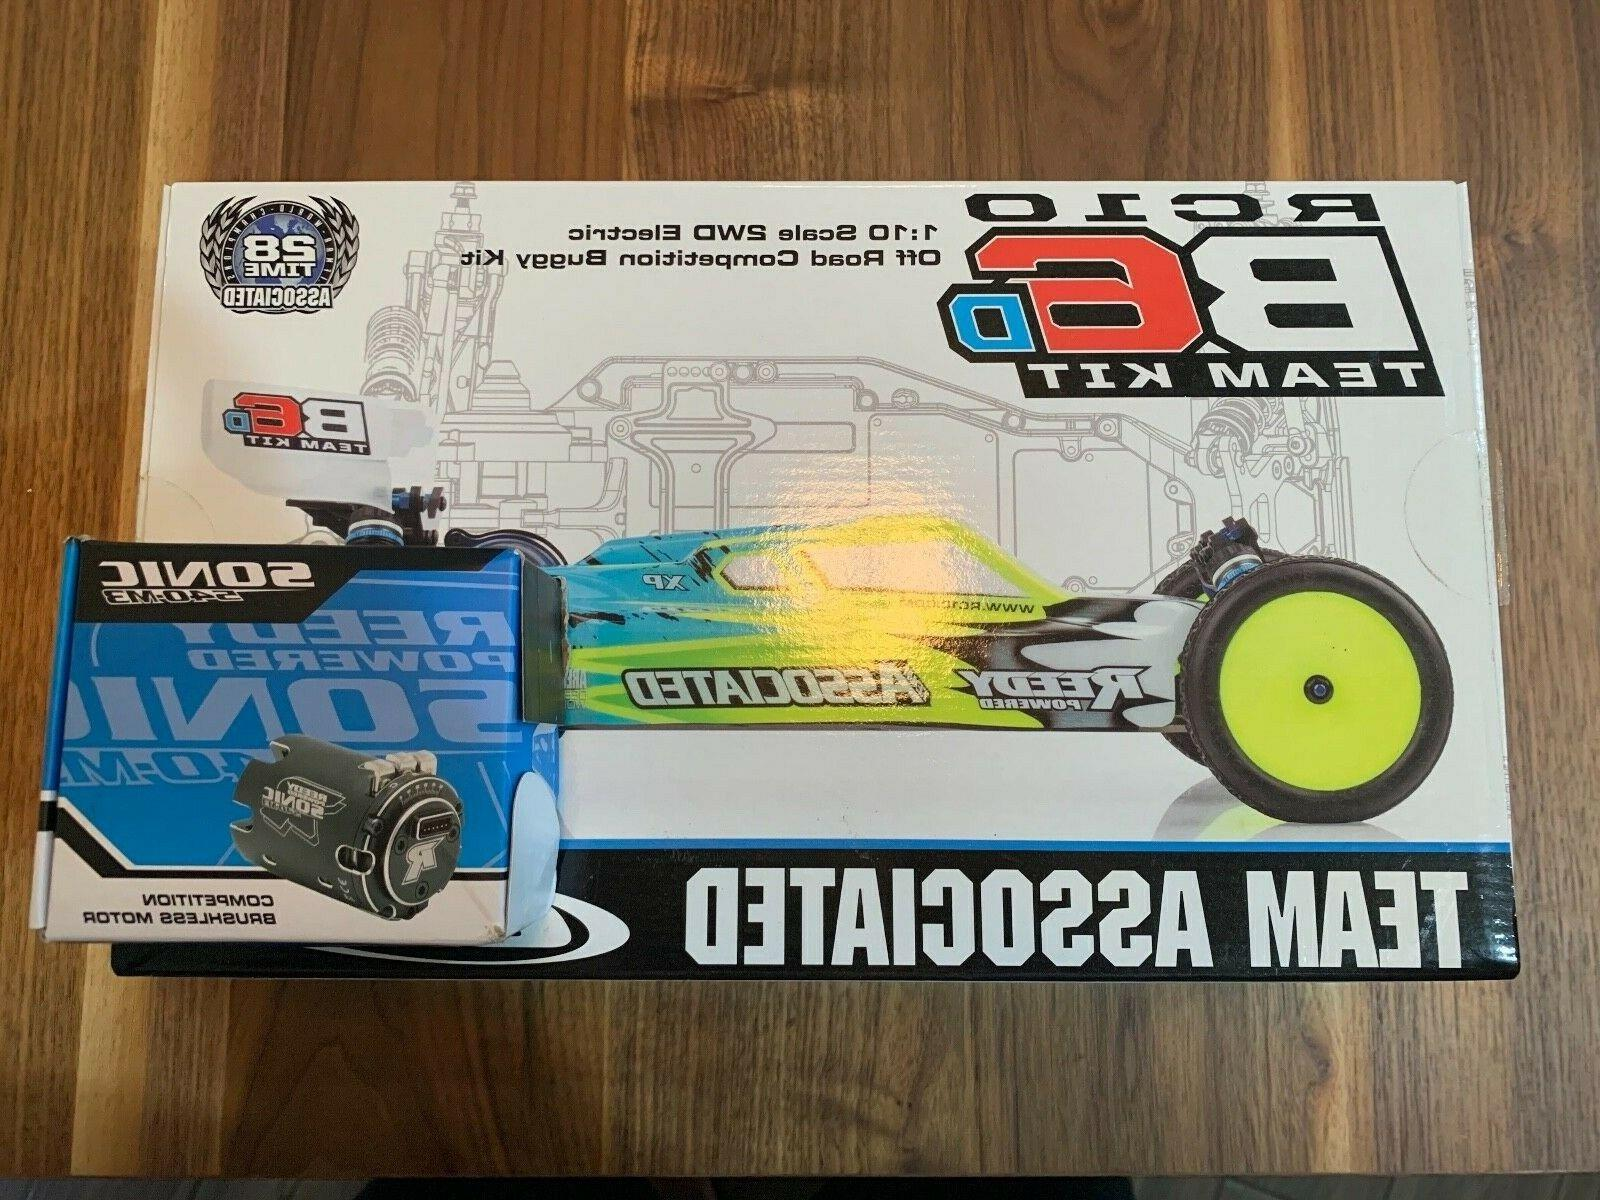 Associated Electrics Asc90012 Rc10B6D 1:10 Scale 2Wd Electri